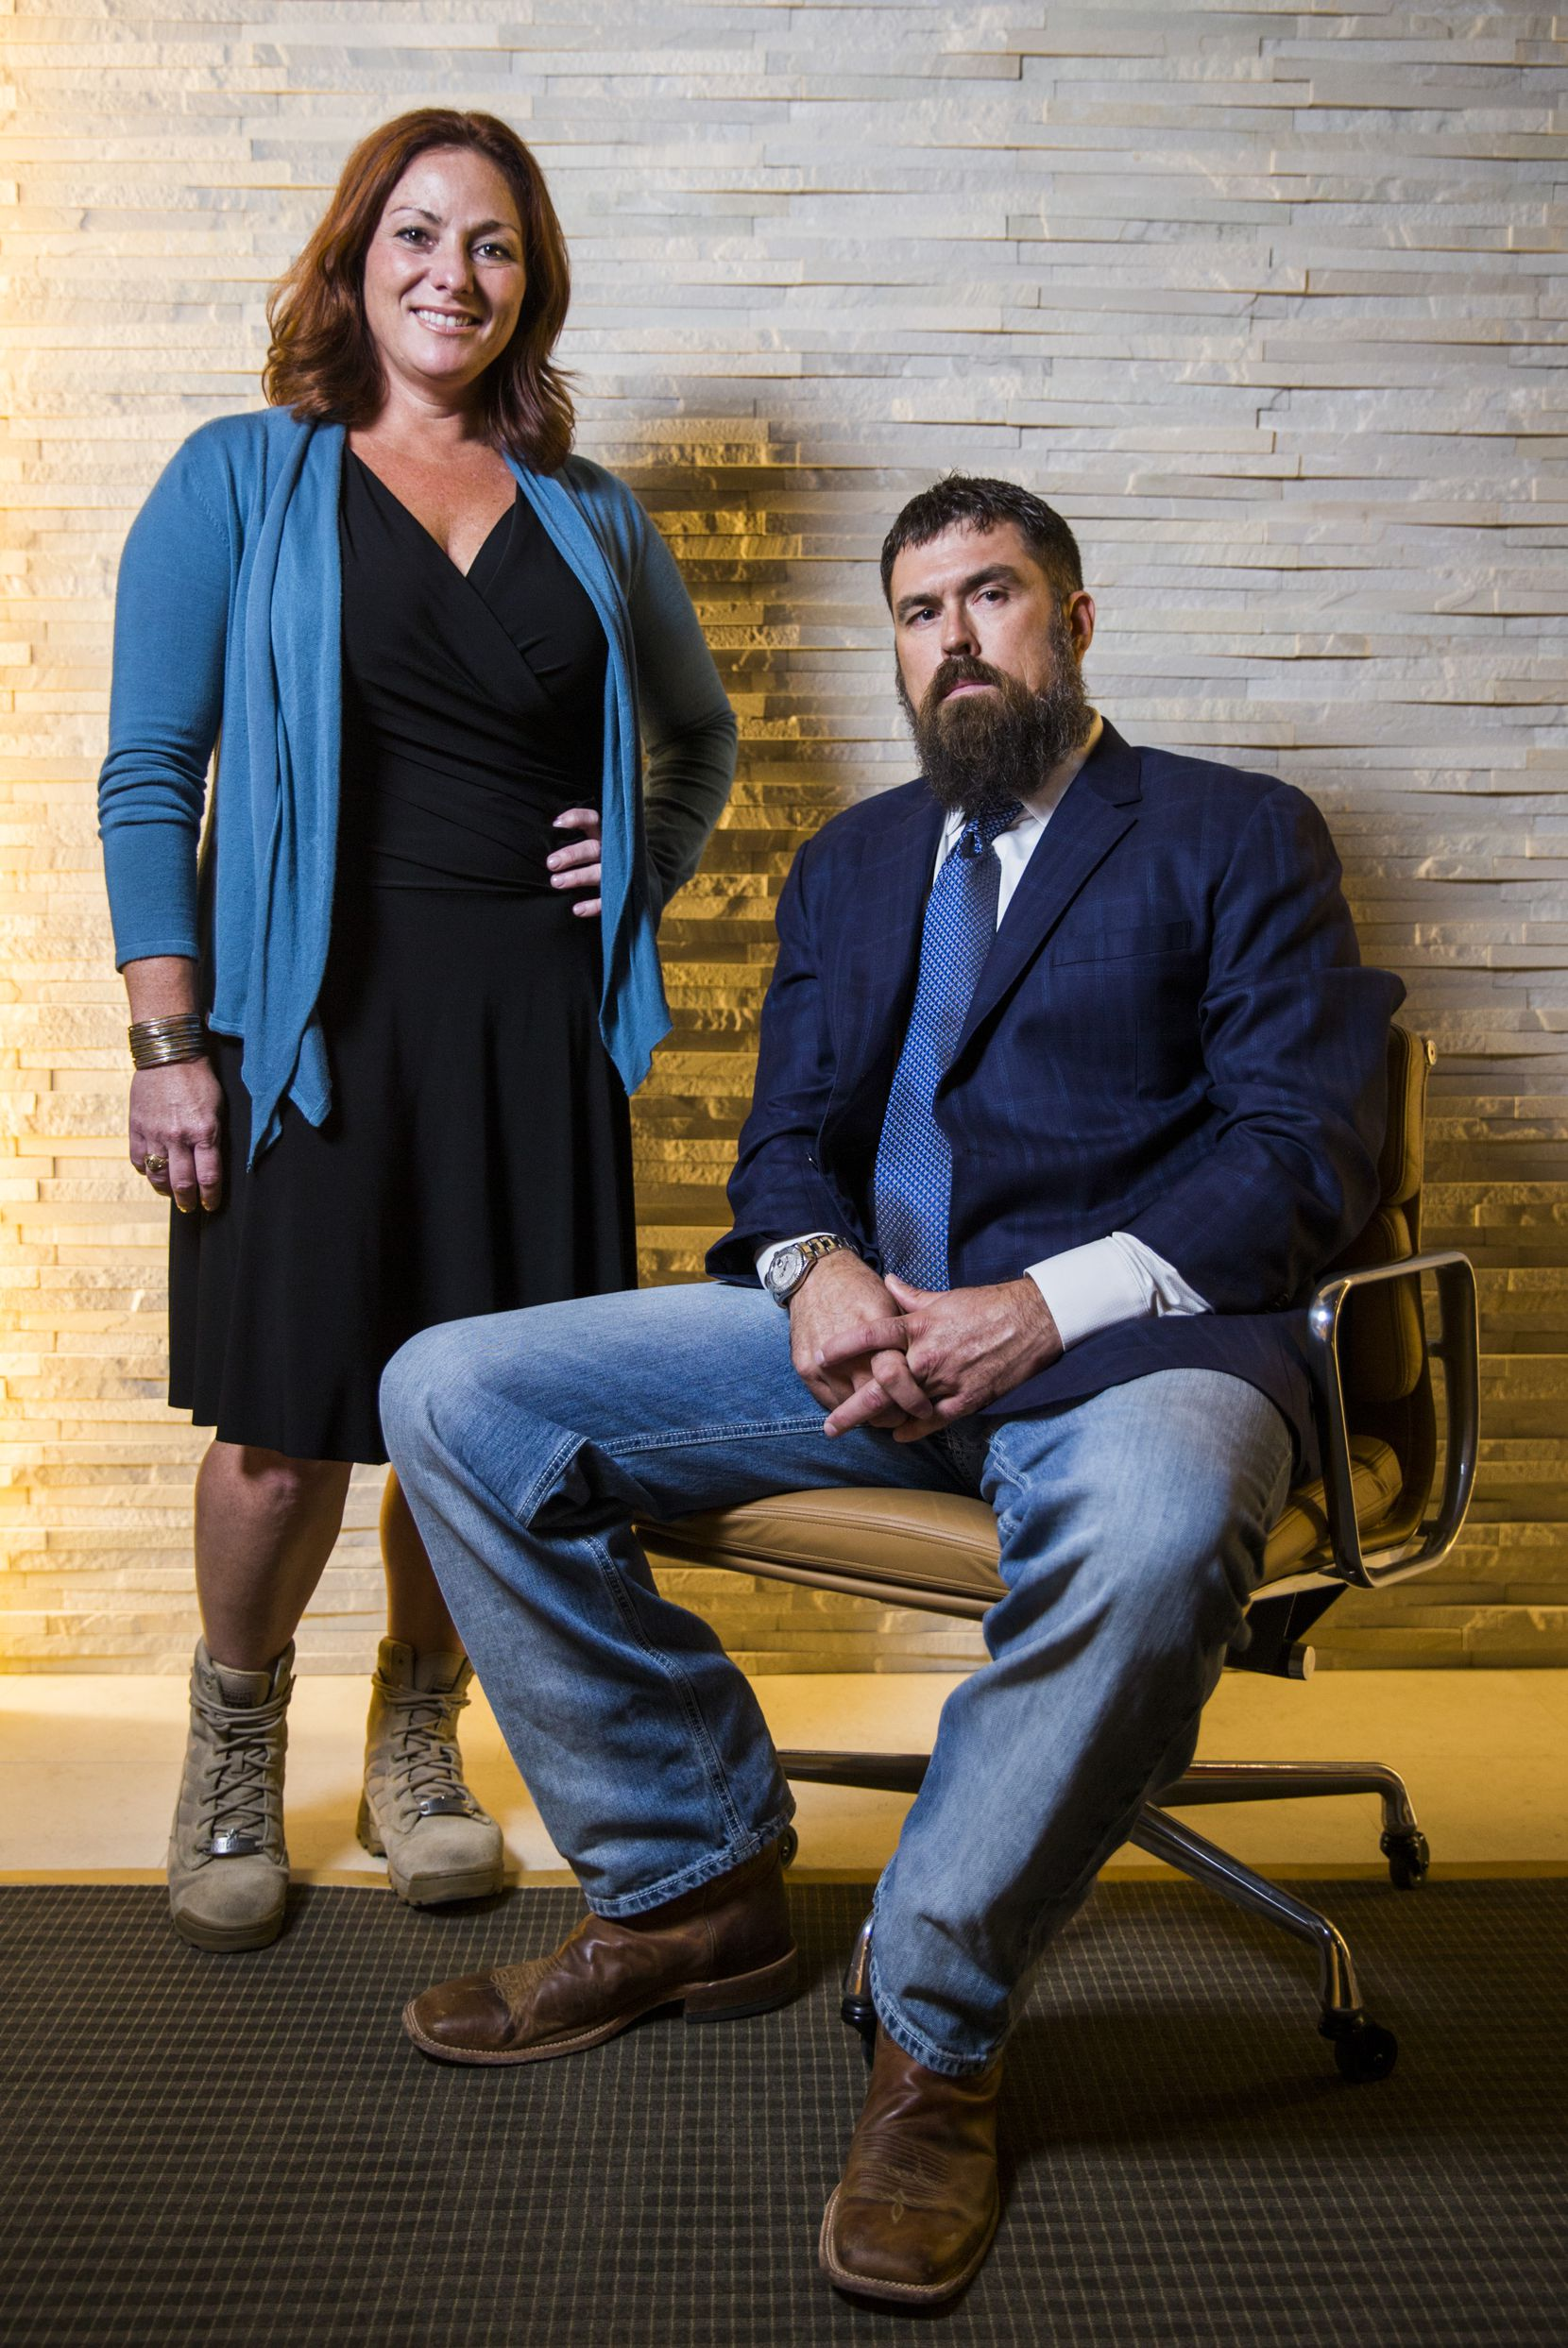 Robyn Payne is CEO of Boot Campaign, and Morgan Luttrell is a former Navy SEAL. Luttrell is a research scientist and is pursuing an advanced degree in cognitive neuroscience at UTD. He is the twin brother of Marcus Luttrell, a former Navy SEAL who created the Lone Survivor Foundation.